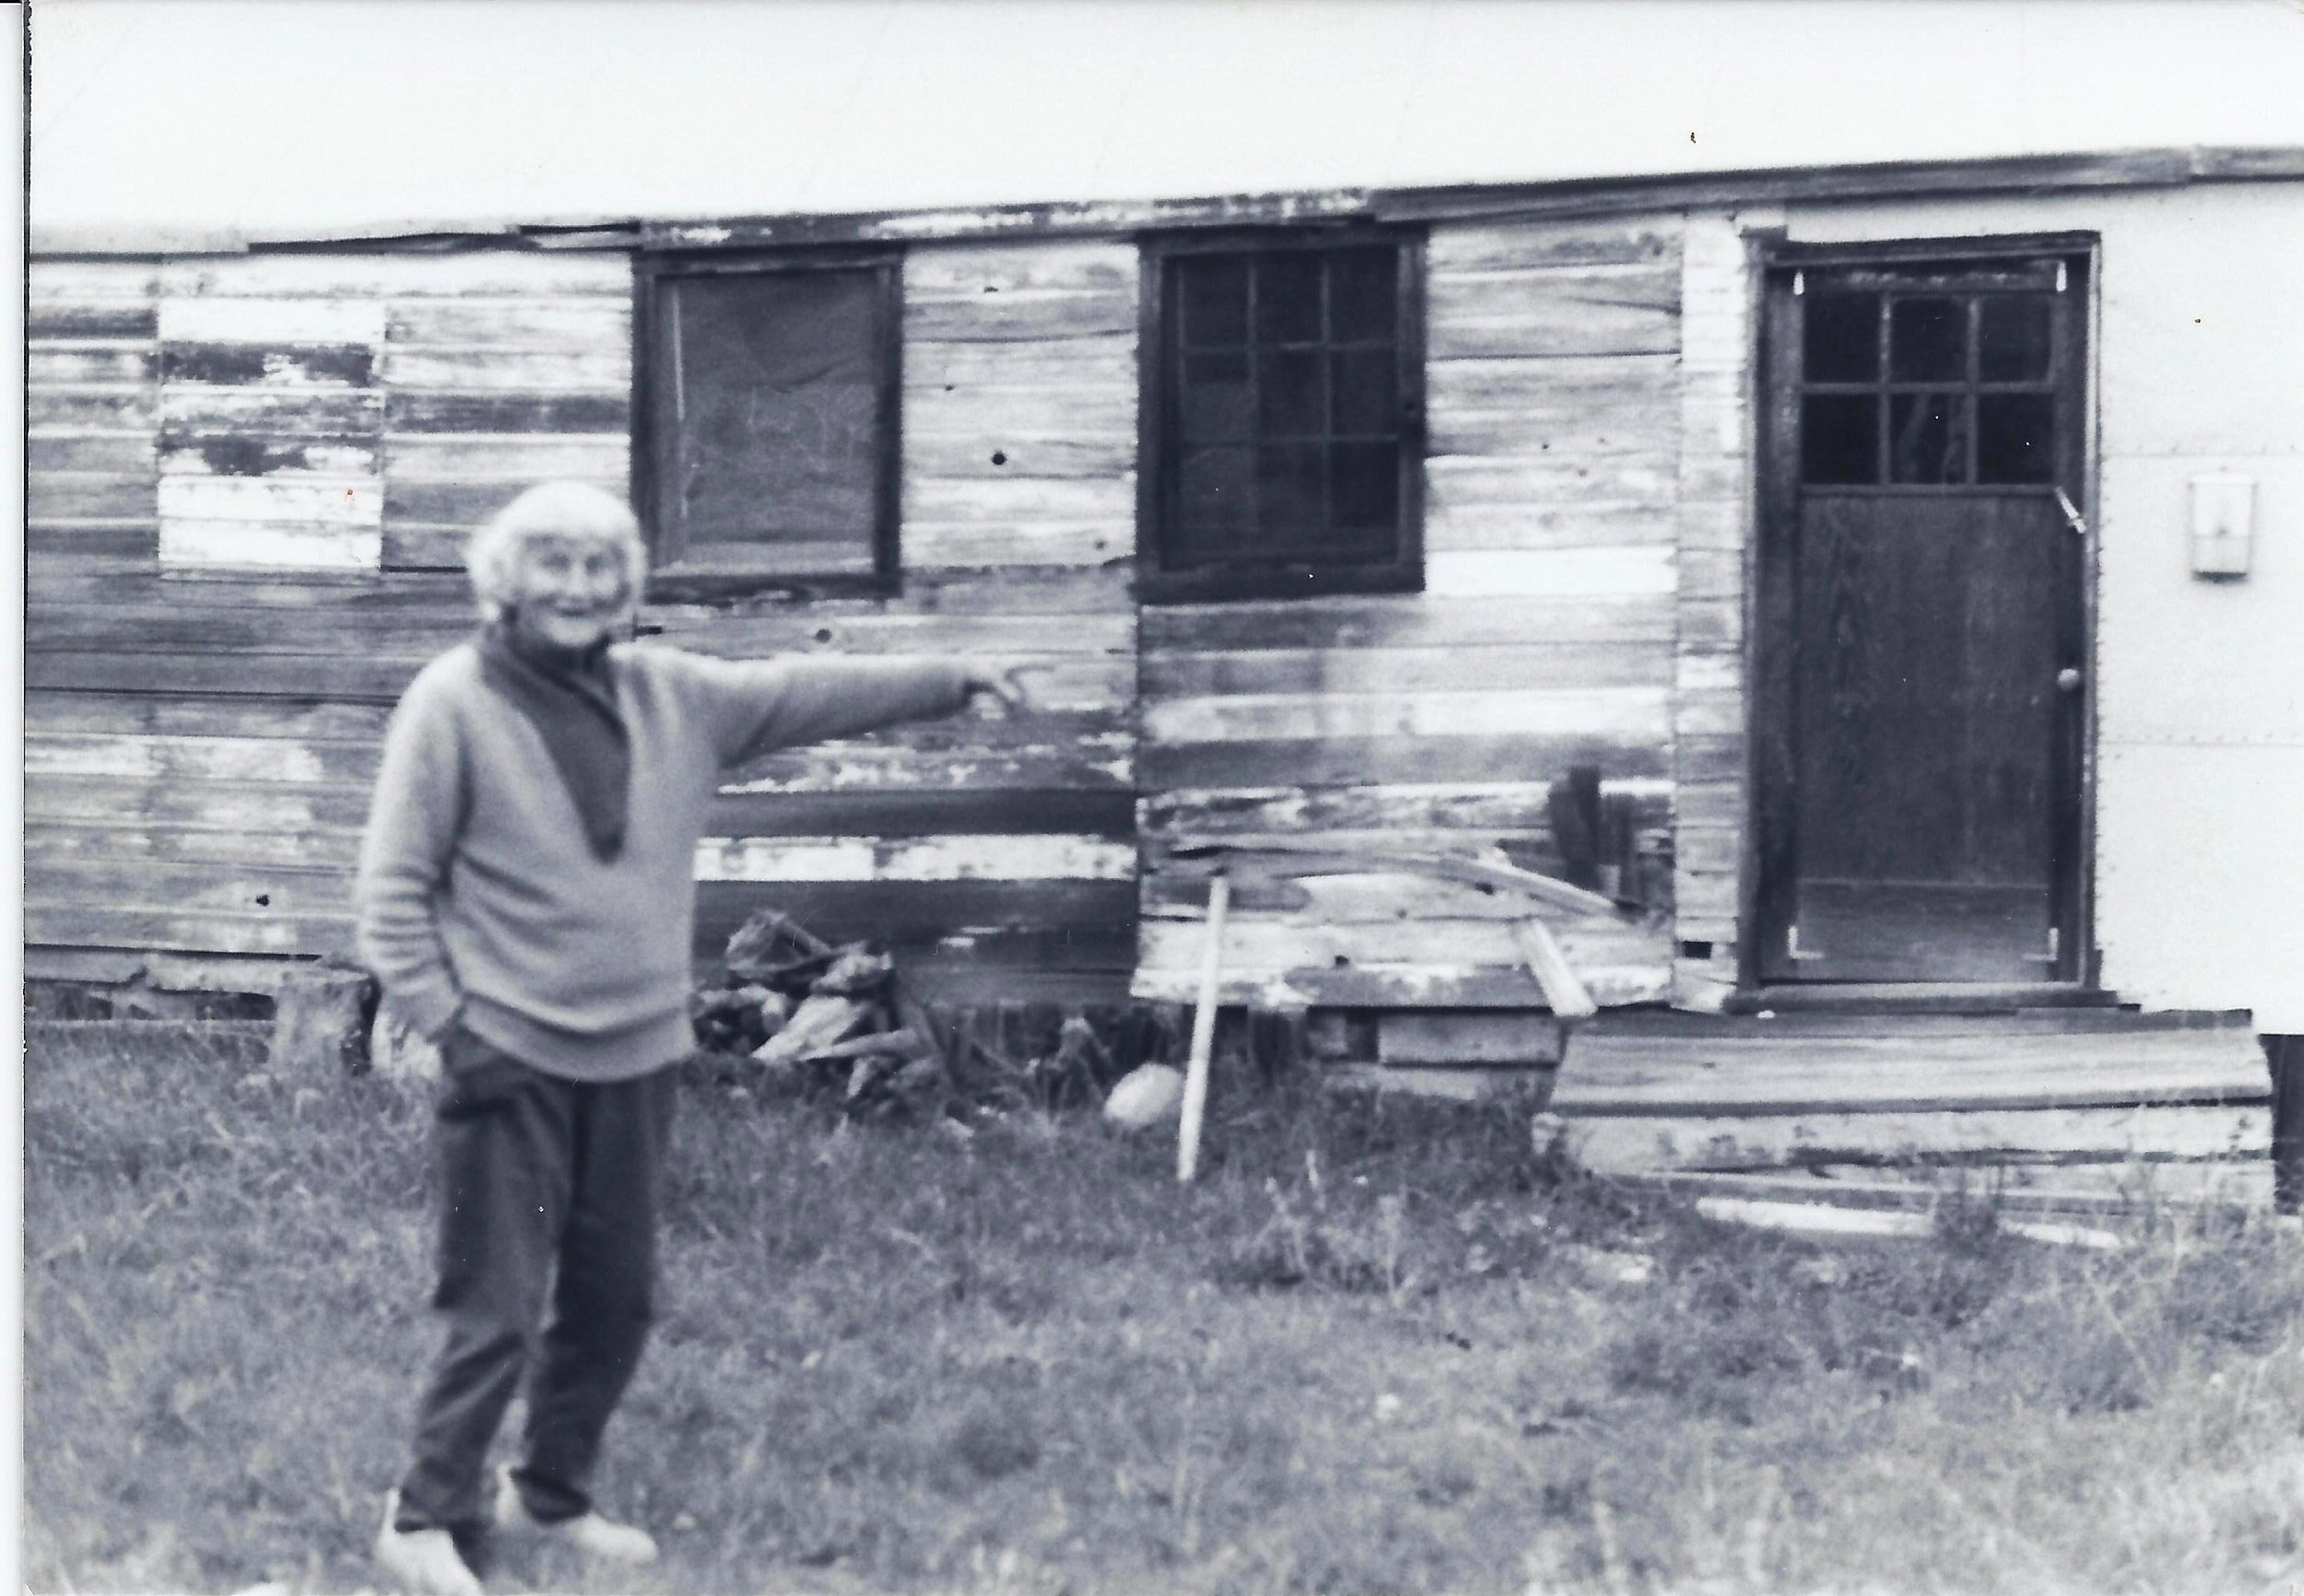 """AGNES BARON, the caretaker of Meher Mount, pointing to the carpenter's shed, known as """"the white house,"""" which was brought on the property to house the men  mandali traveling with Avatar Meher Baba's for His planned 10-day stay in 1952. He did not arrive at Meher Mount in 1952 due to the automobile accident on May 24 near Prague, OK."""